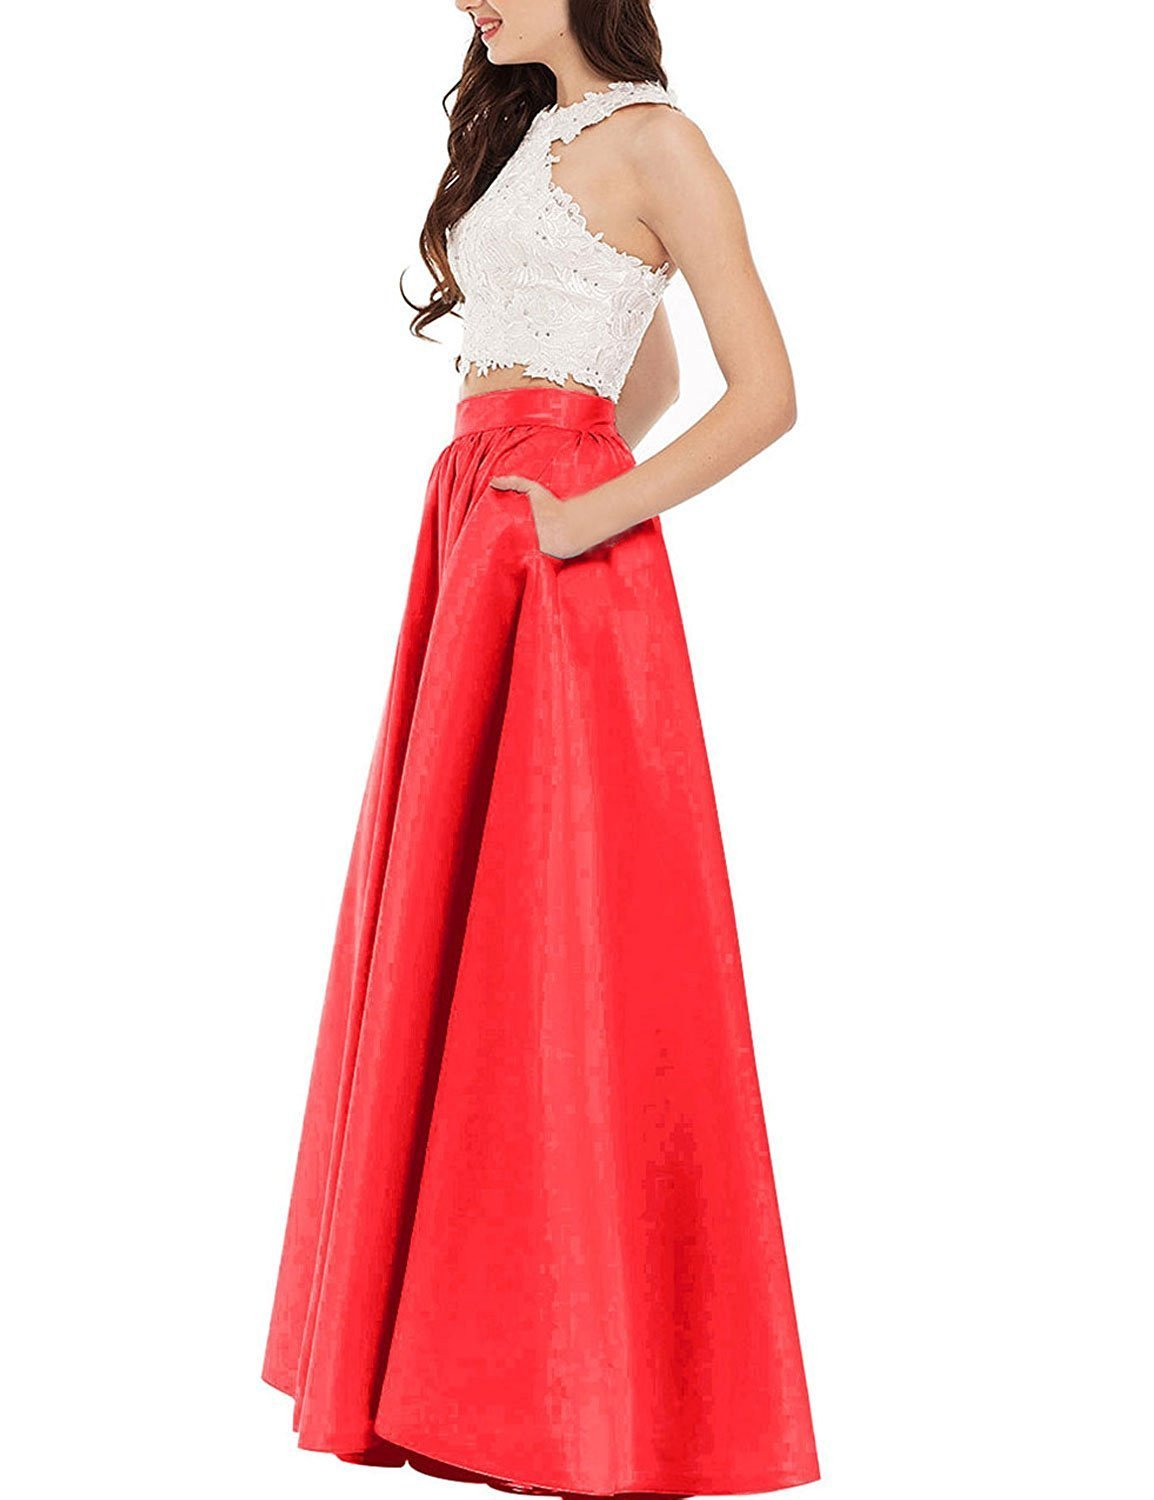 Women's 2018 Two Pieces Prom Dresses Satin Long Prom Dresses with Pockets Dress